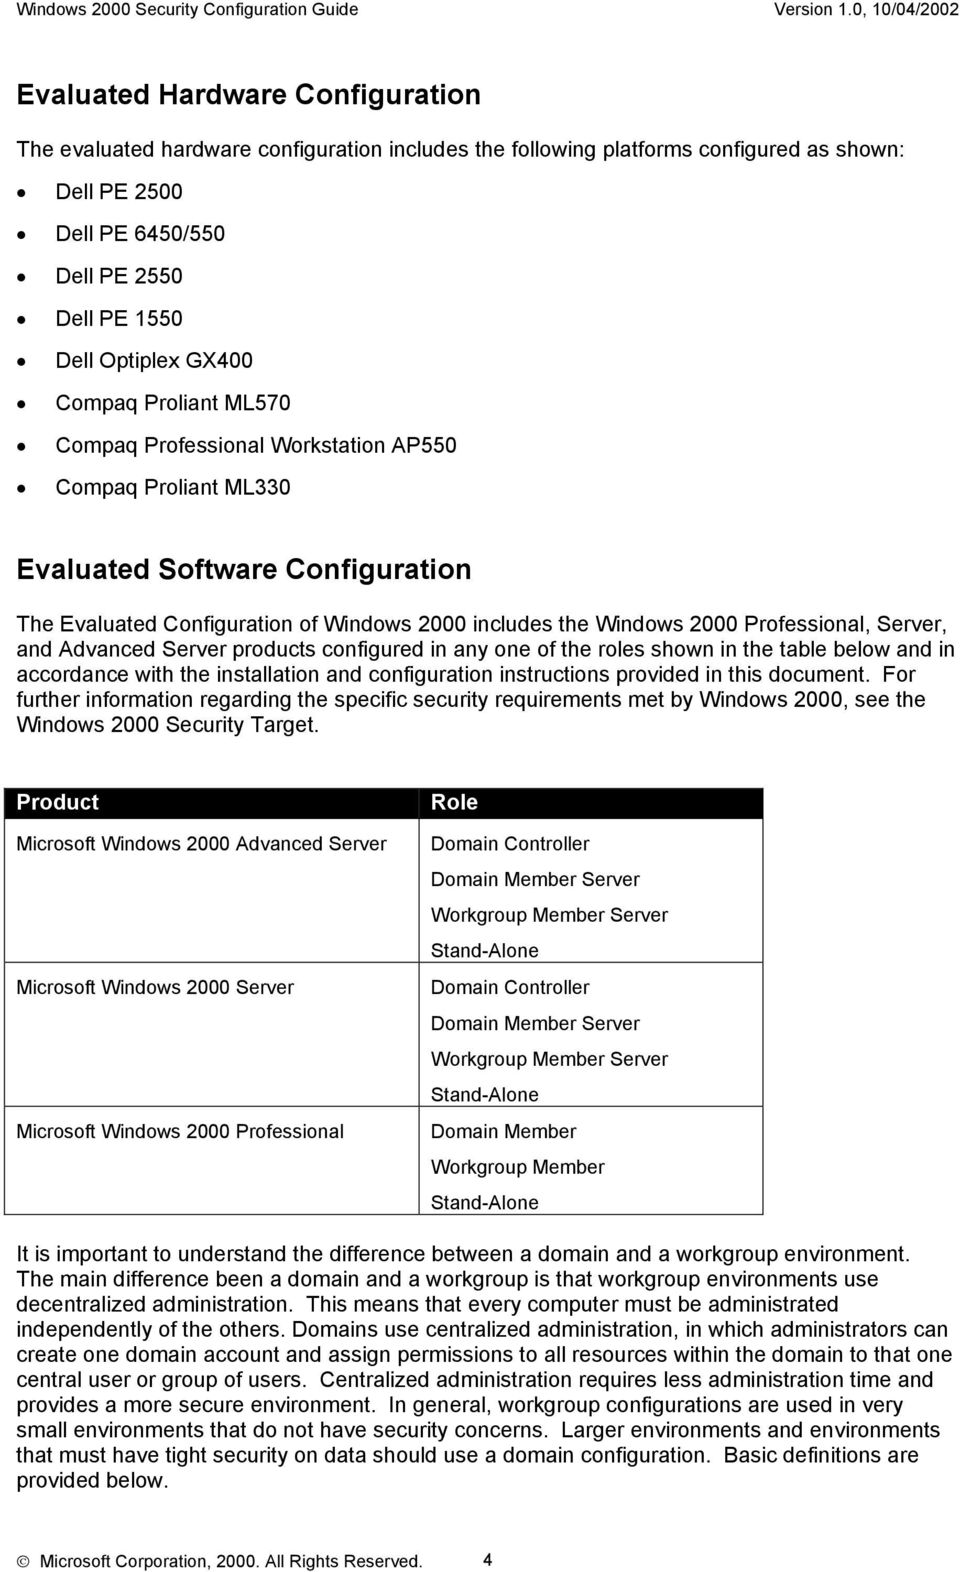 Server, and Advanced Server products configured in any one of the roles shown in the table below and in accordance with the installation and configuration instructions provided in this document.